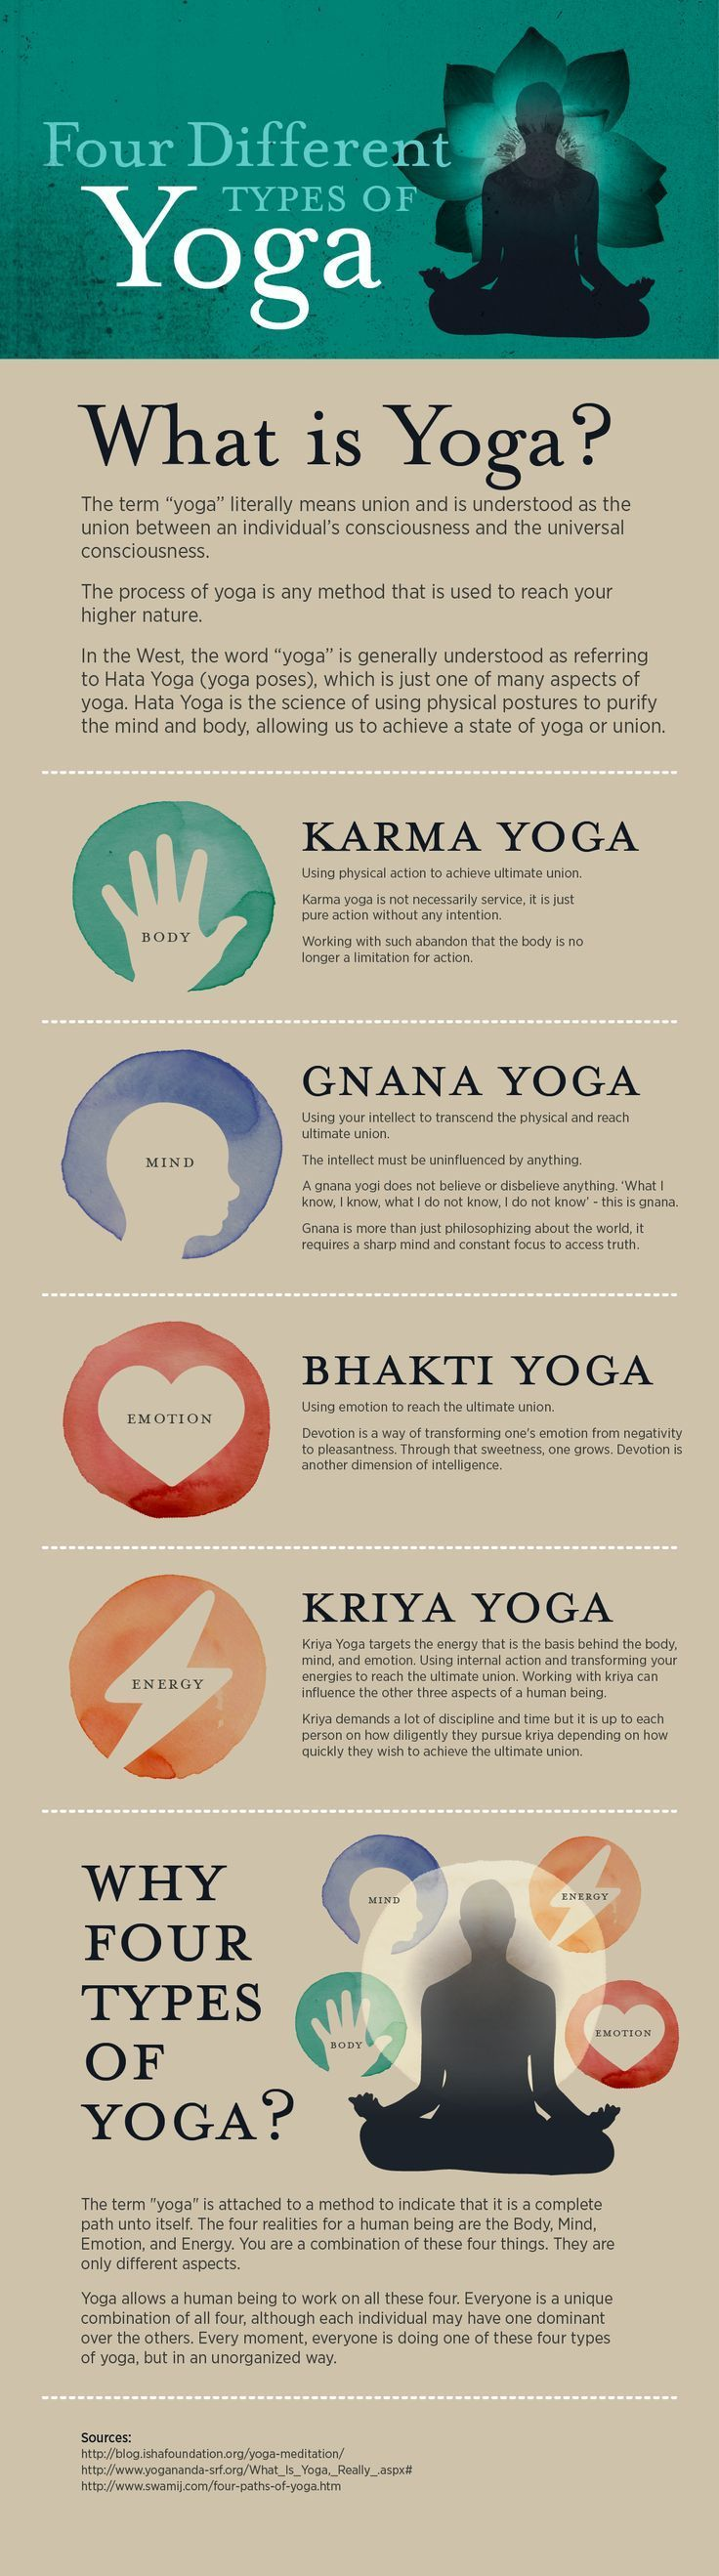 4 Different Types Of Yoga